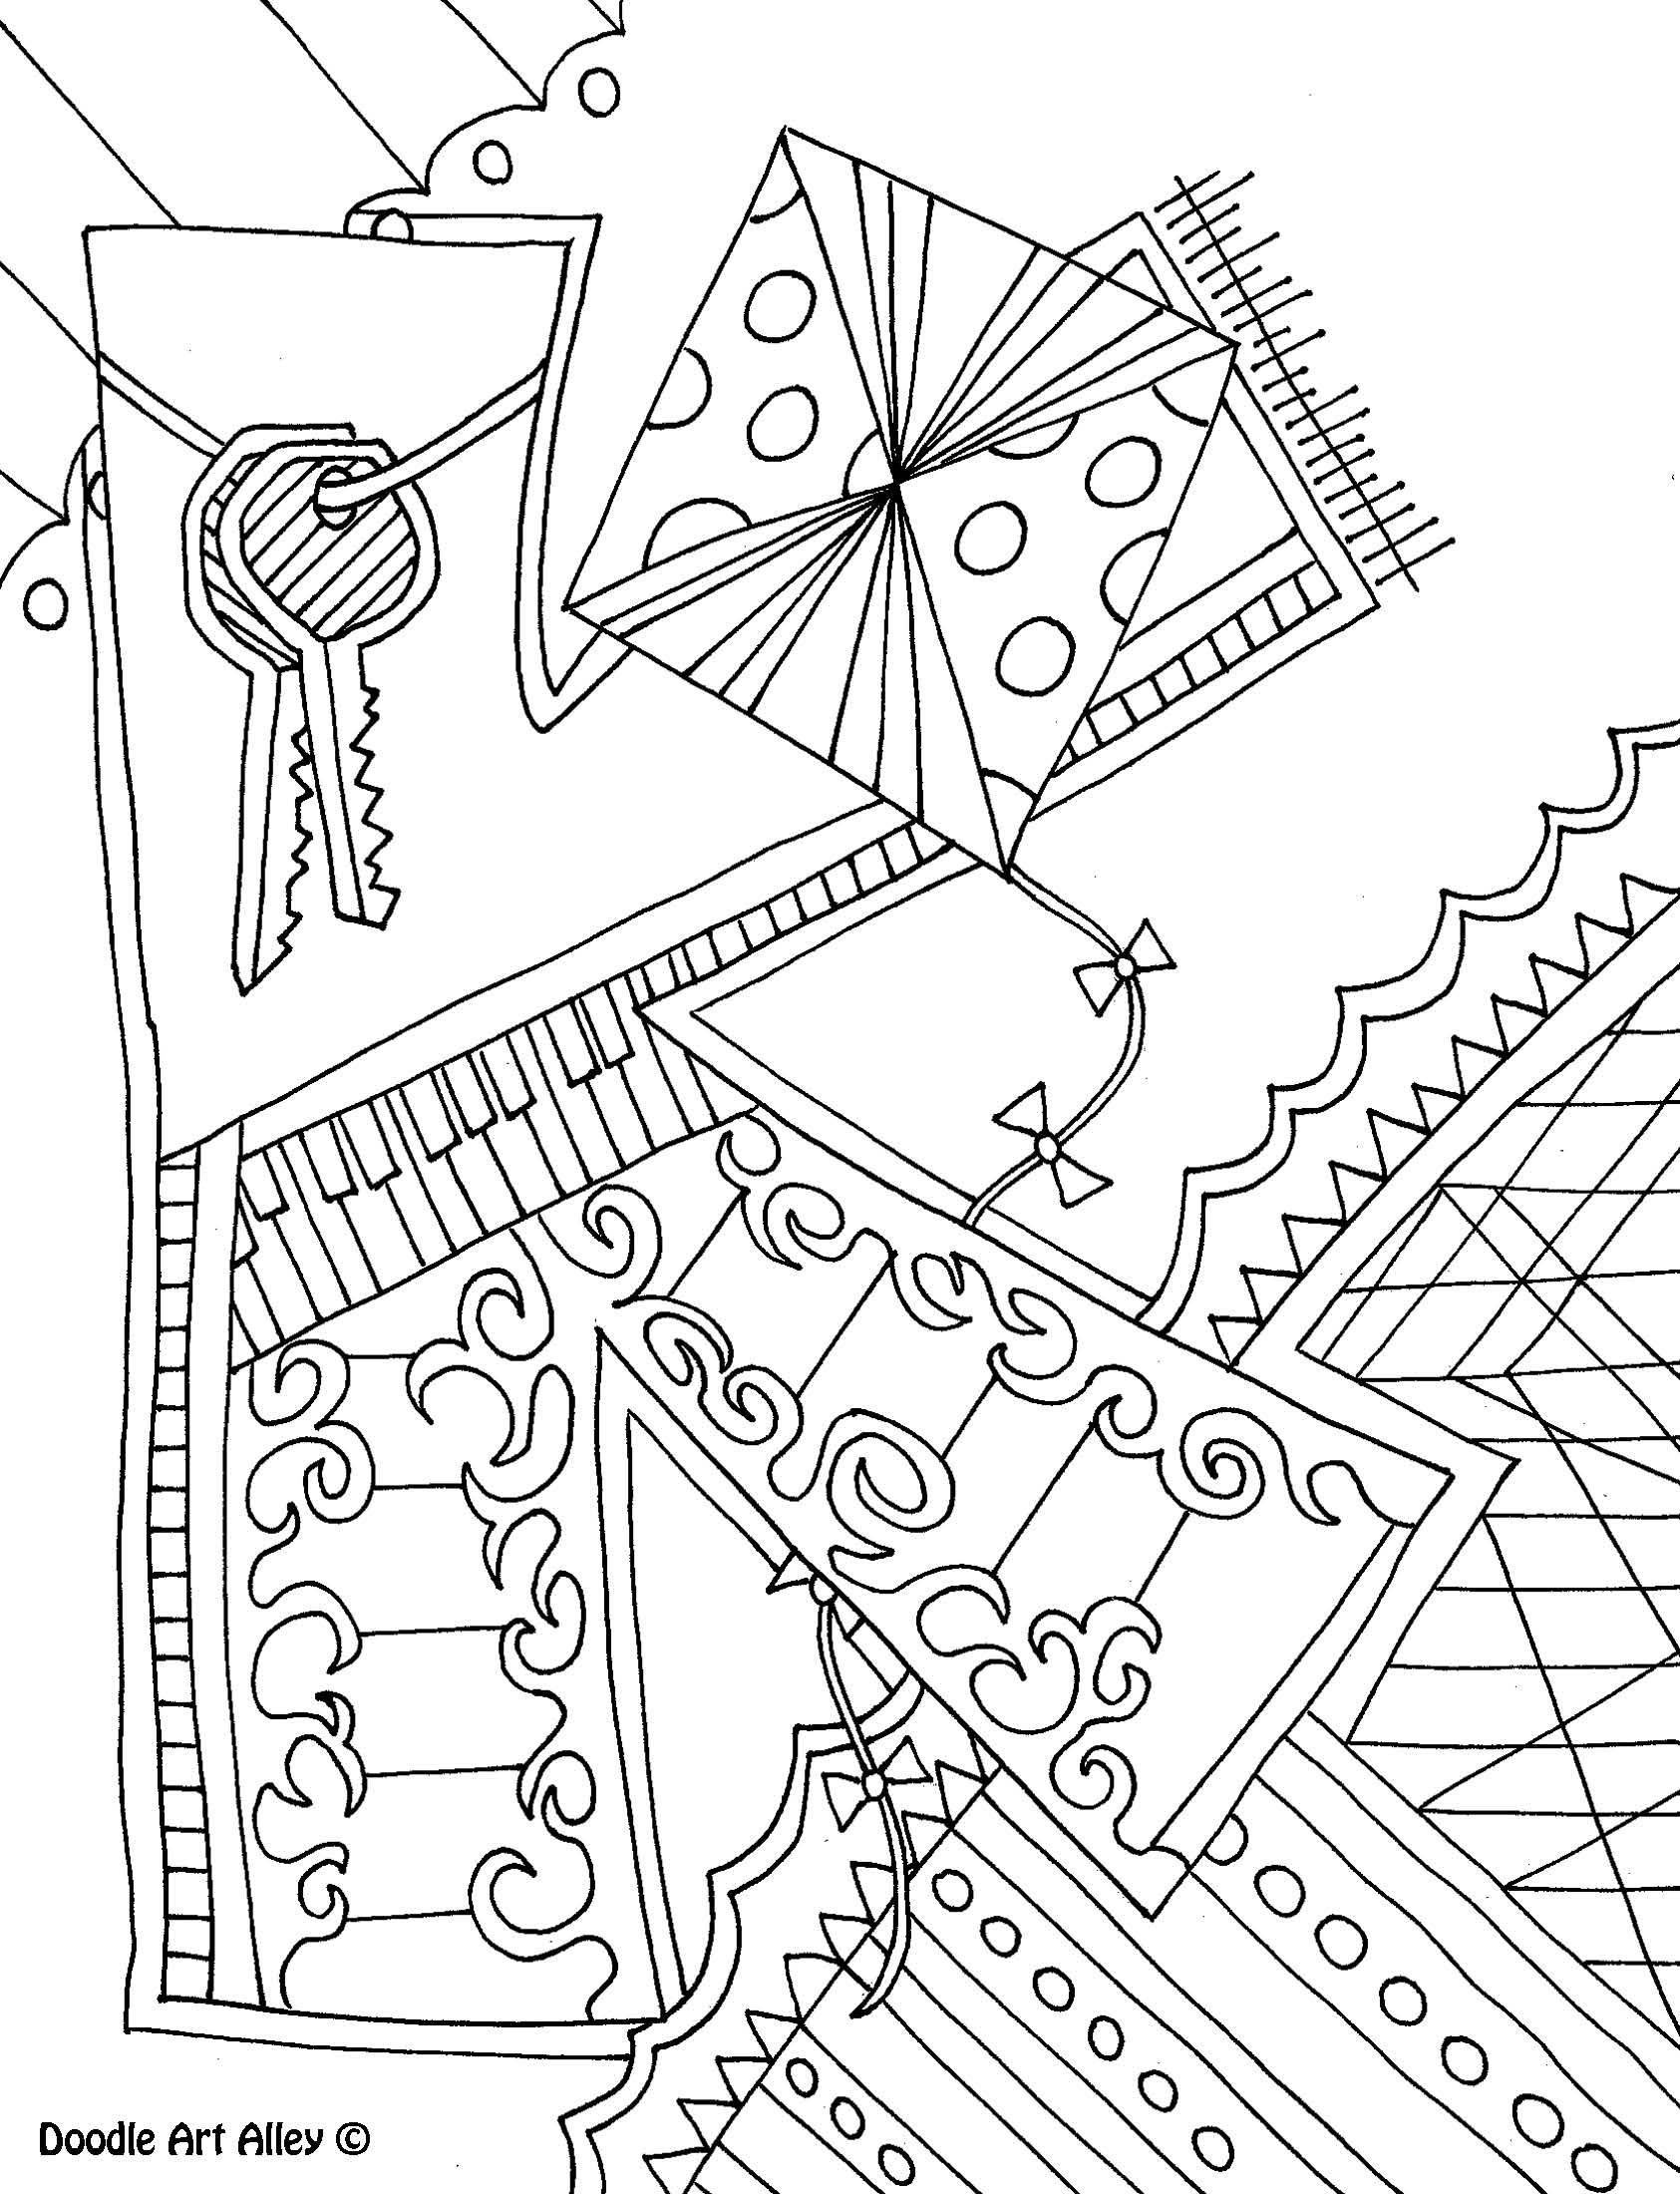 Alphabet Coloring Pages School Coloring Pages Coloring Pages Alphabet Coloring Pages